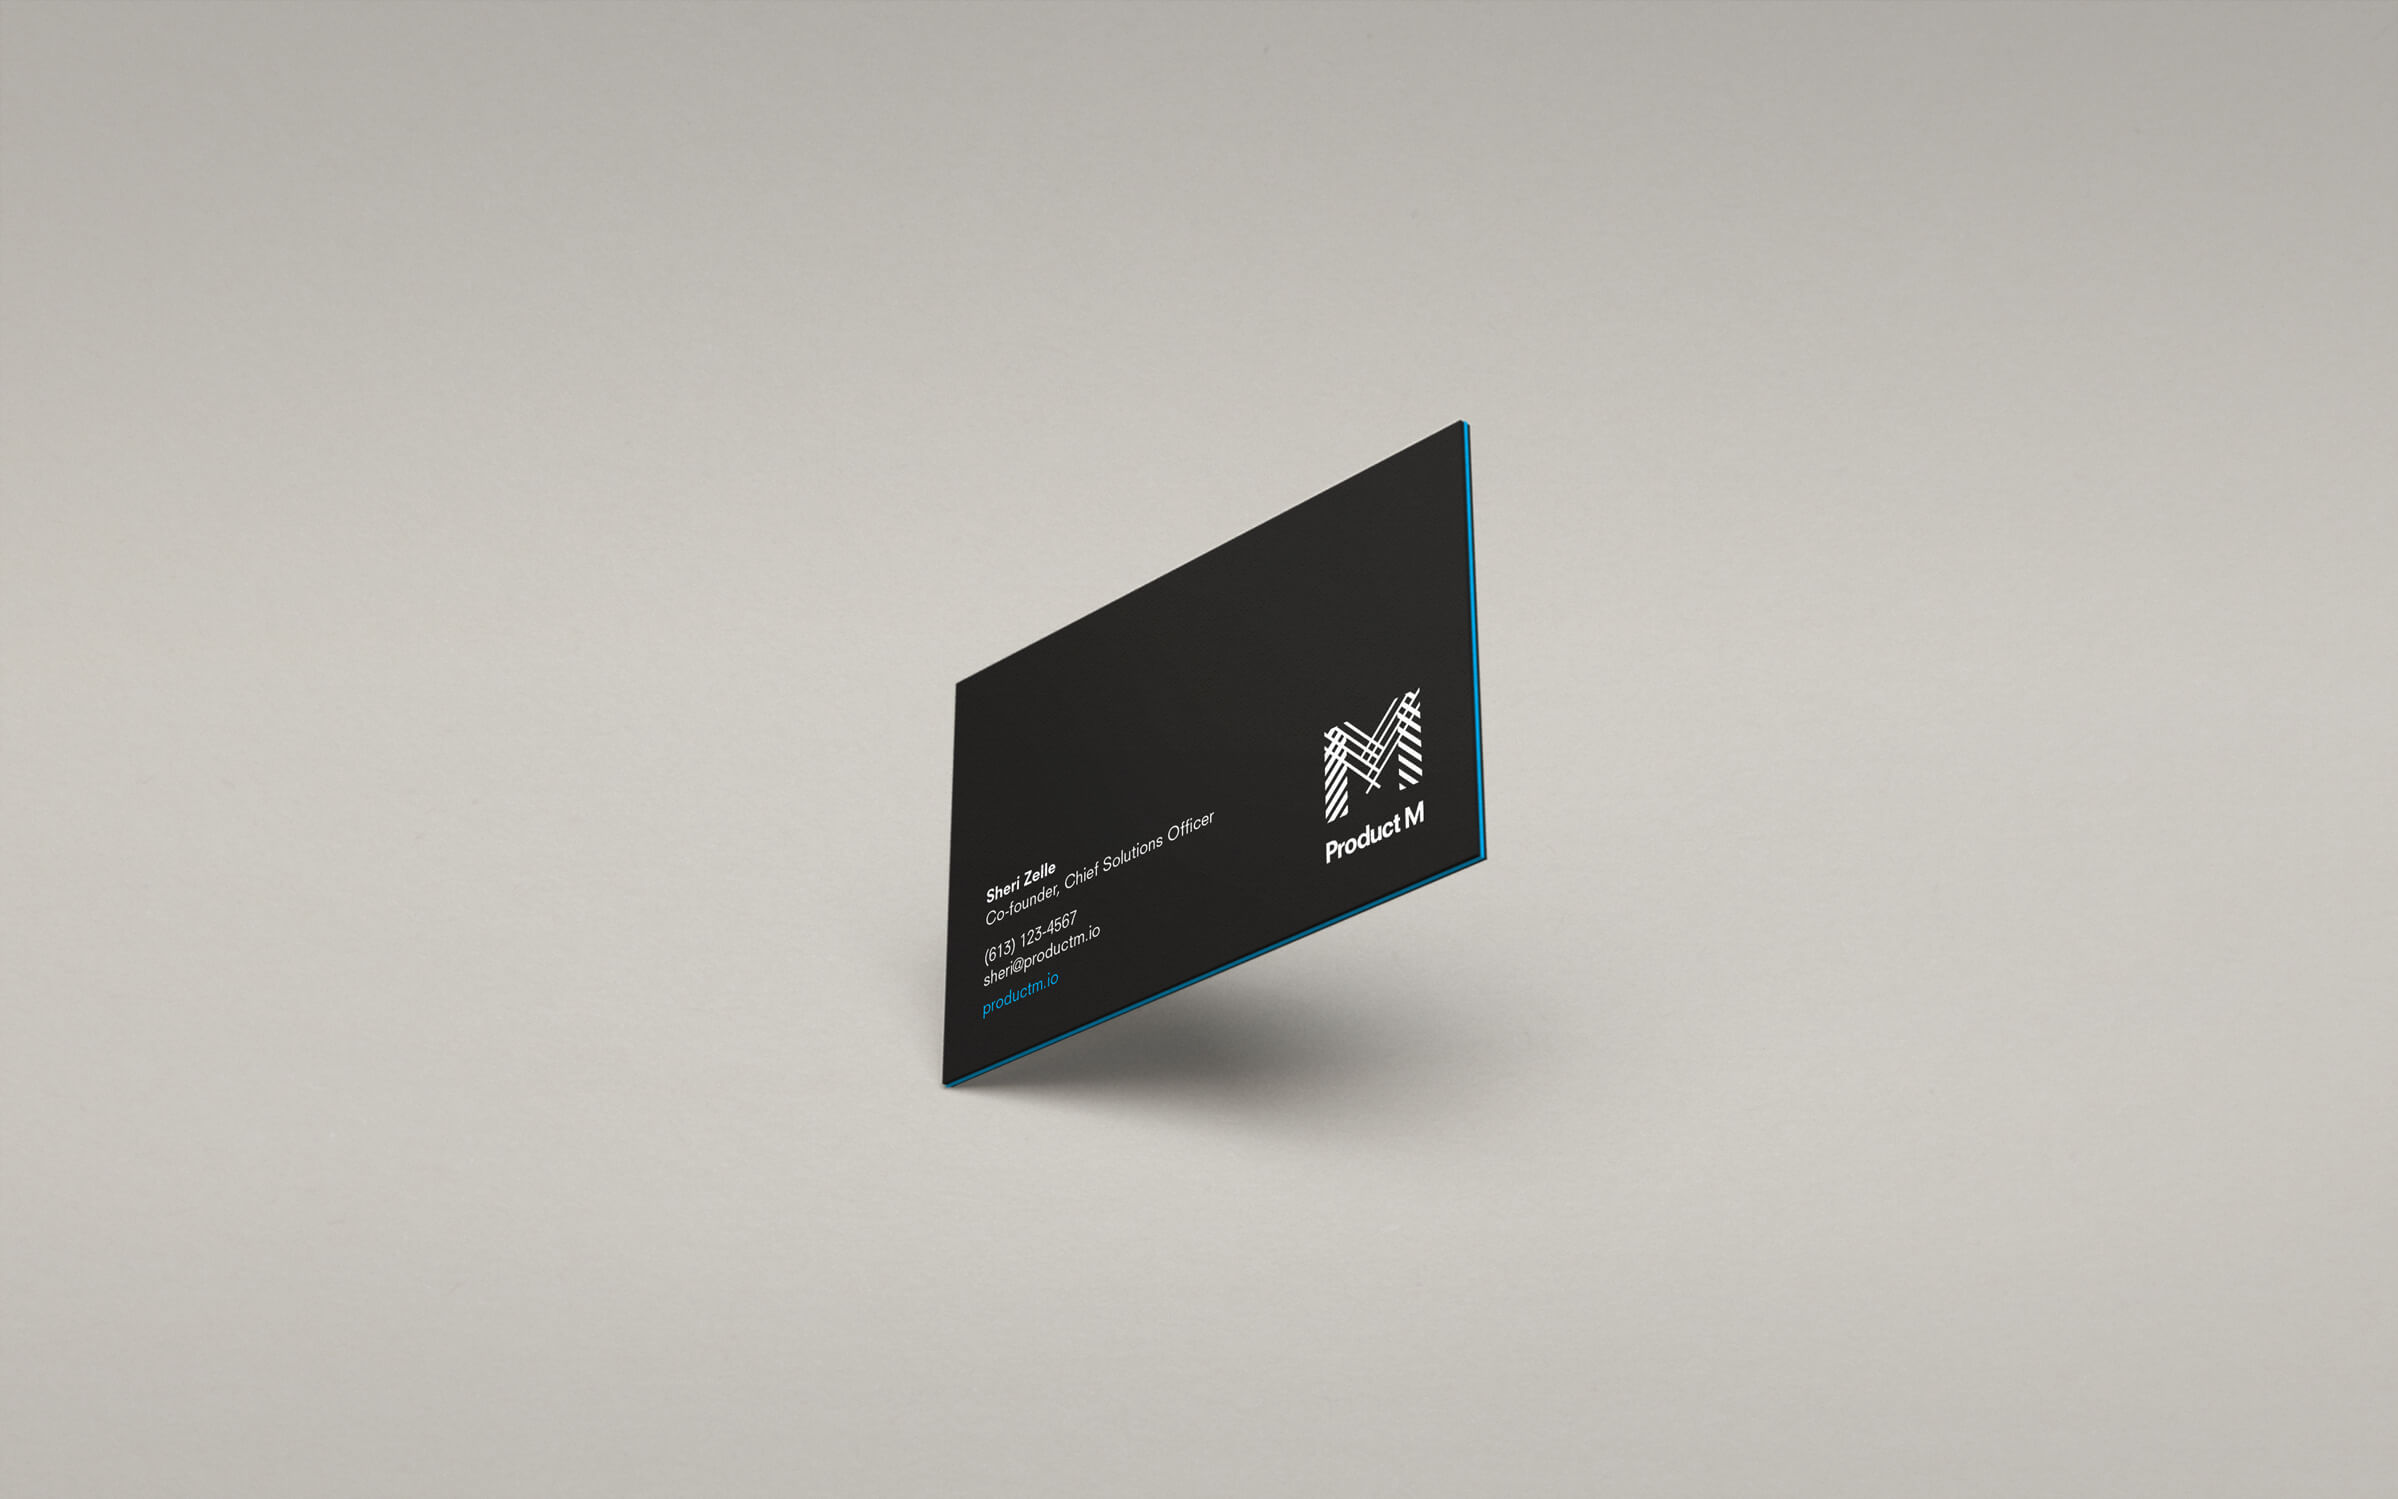 Product M business card for New York-based product marketing company by Ottawa graphic designer idApostle